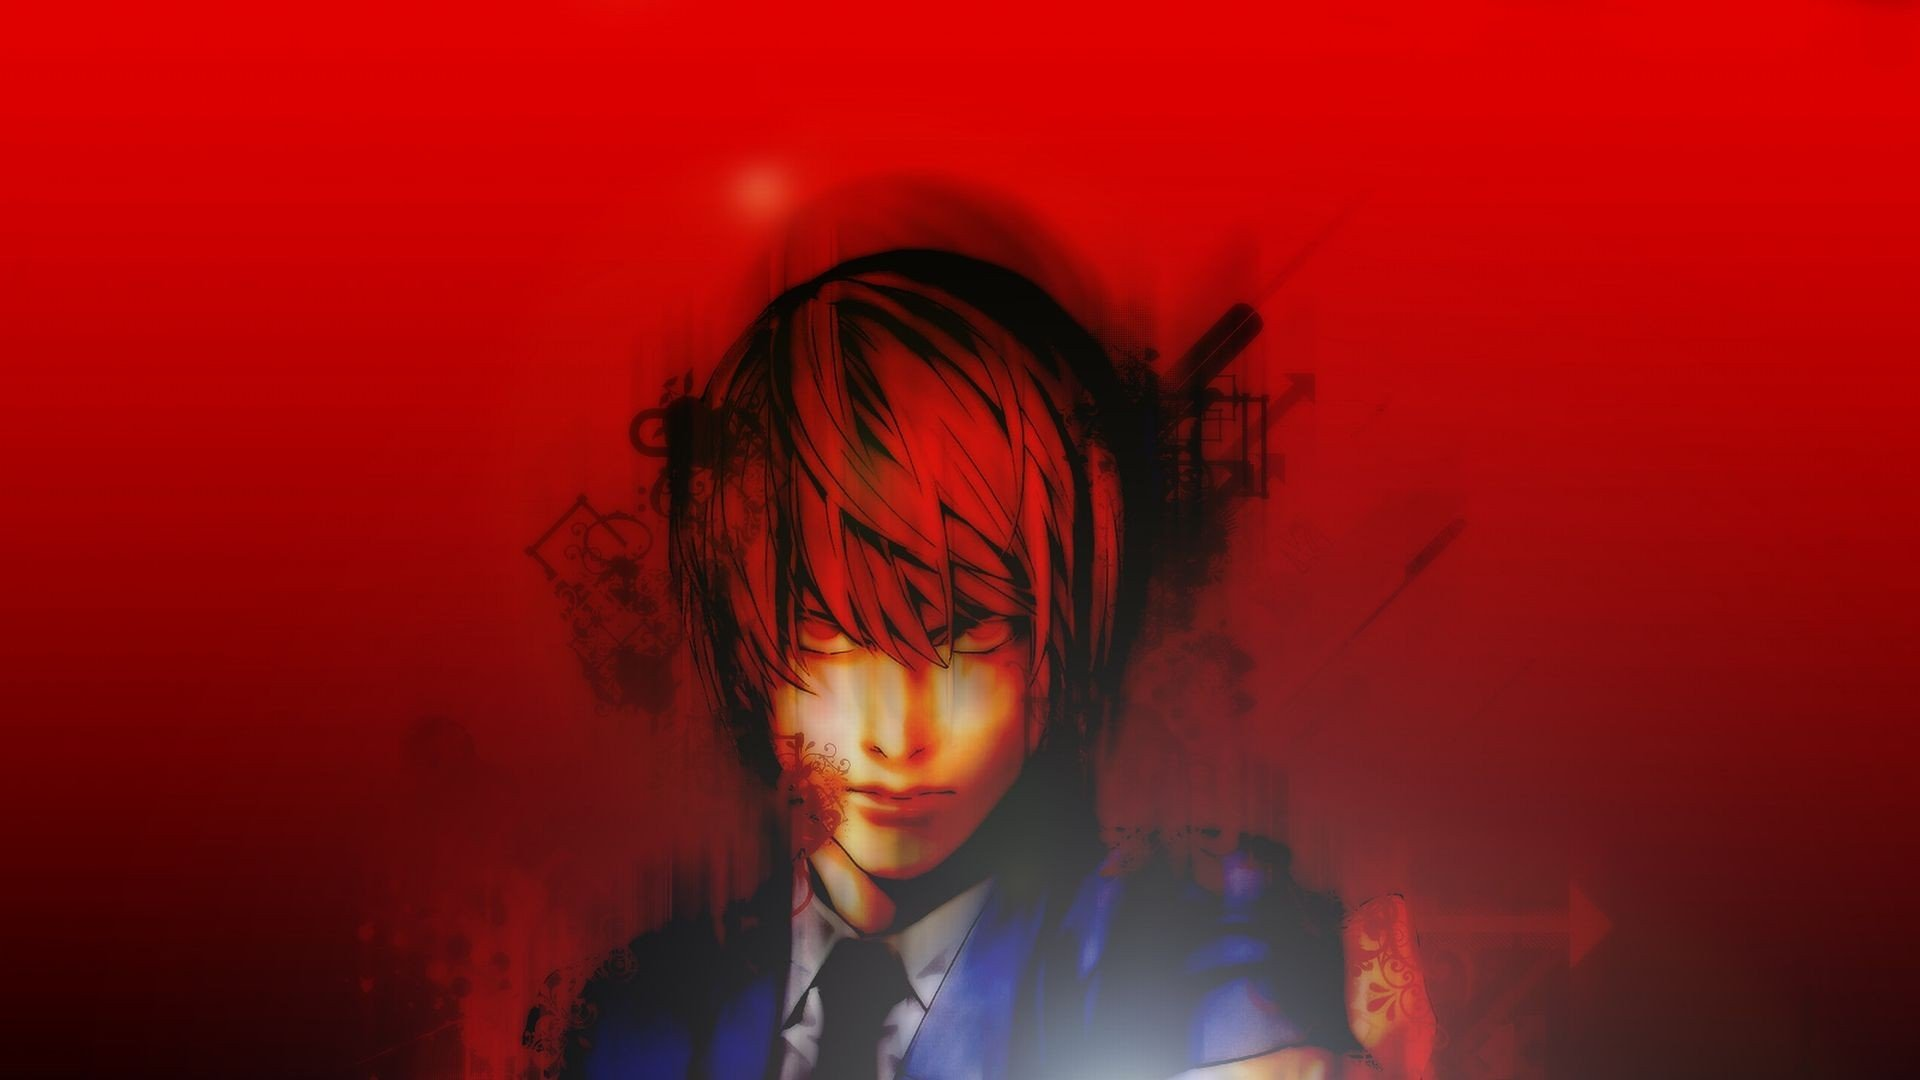 Death Note Kira Red 347160 Hd Wallpaper Backgrounds